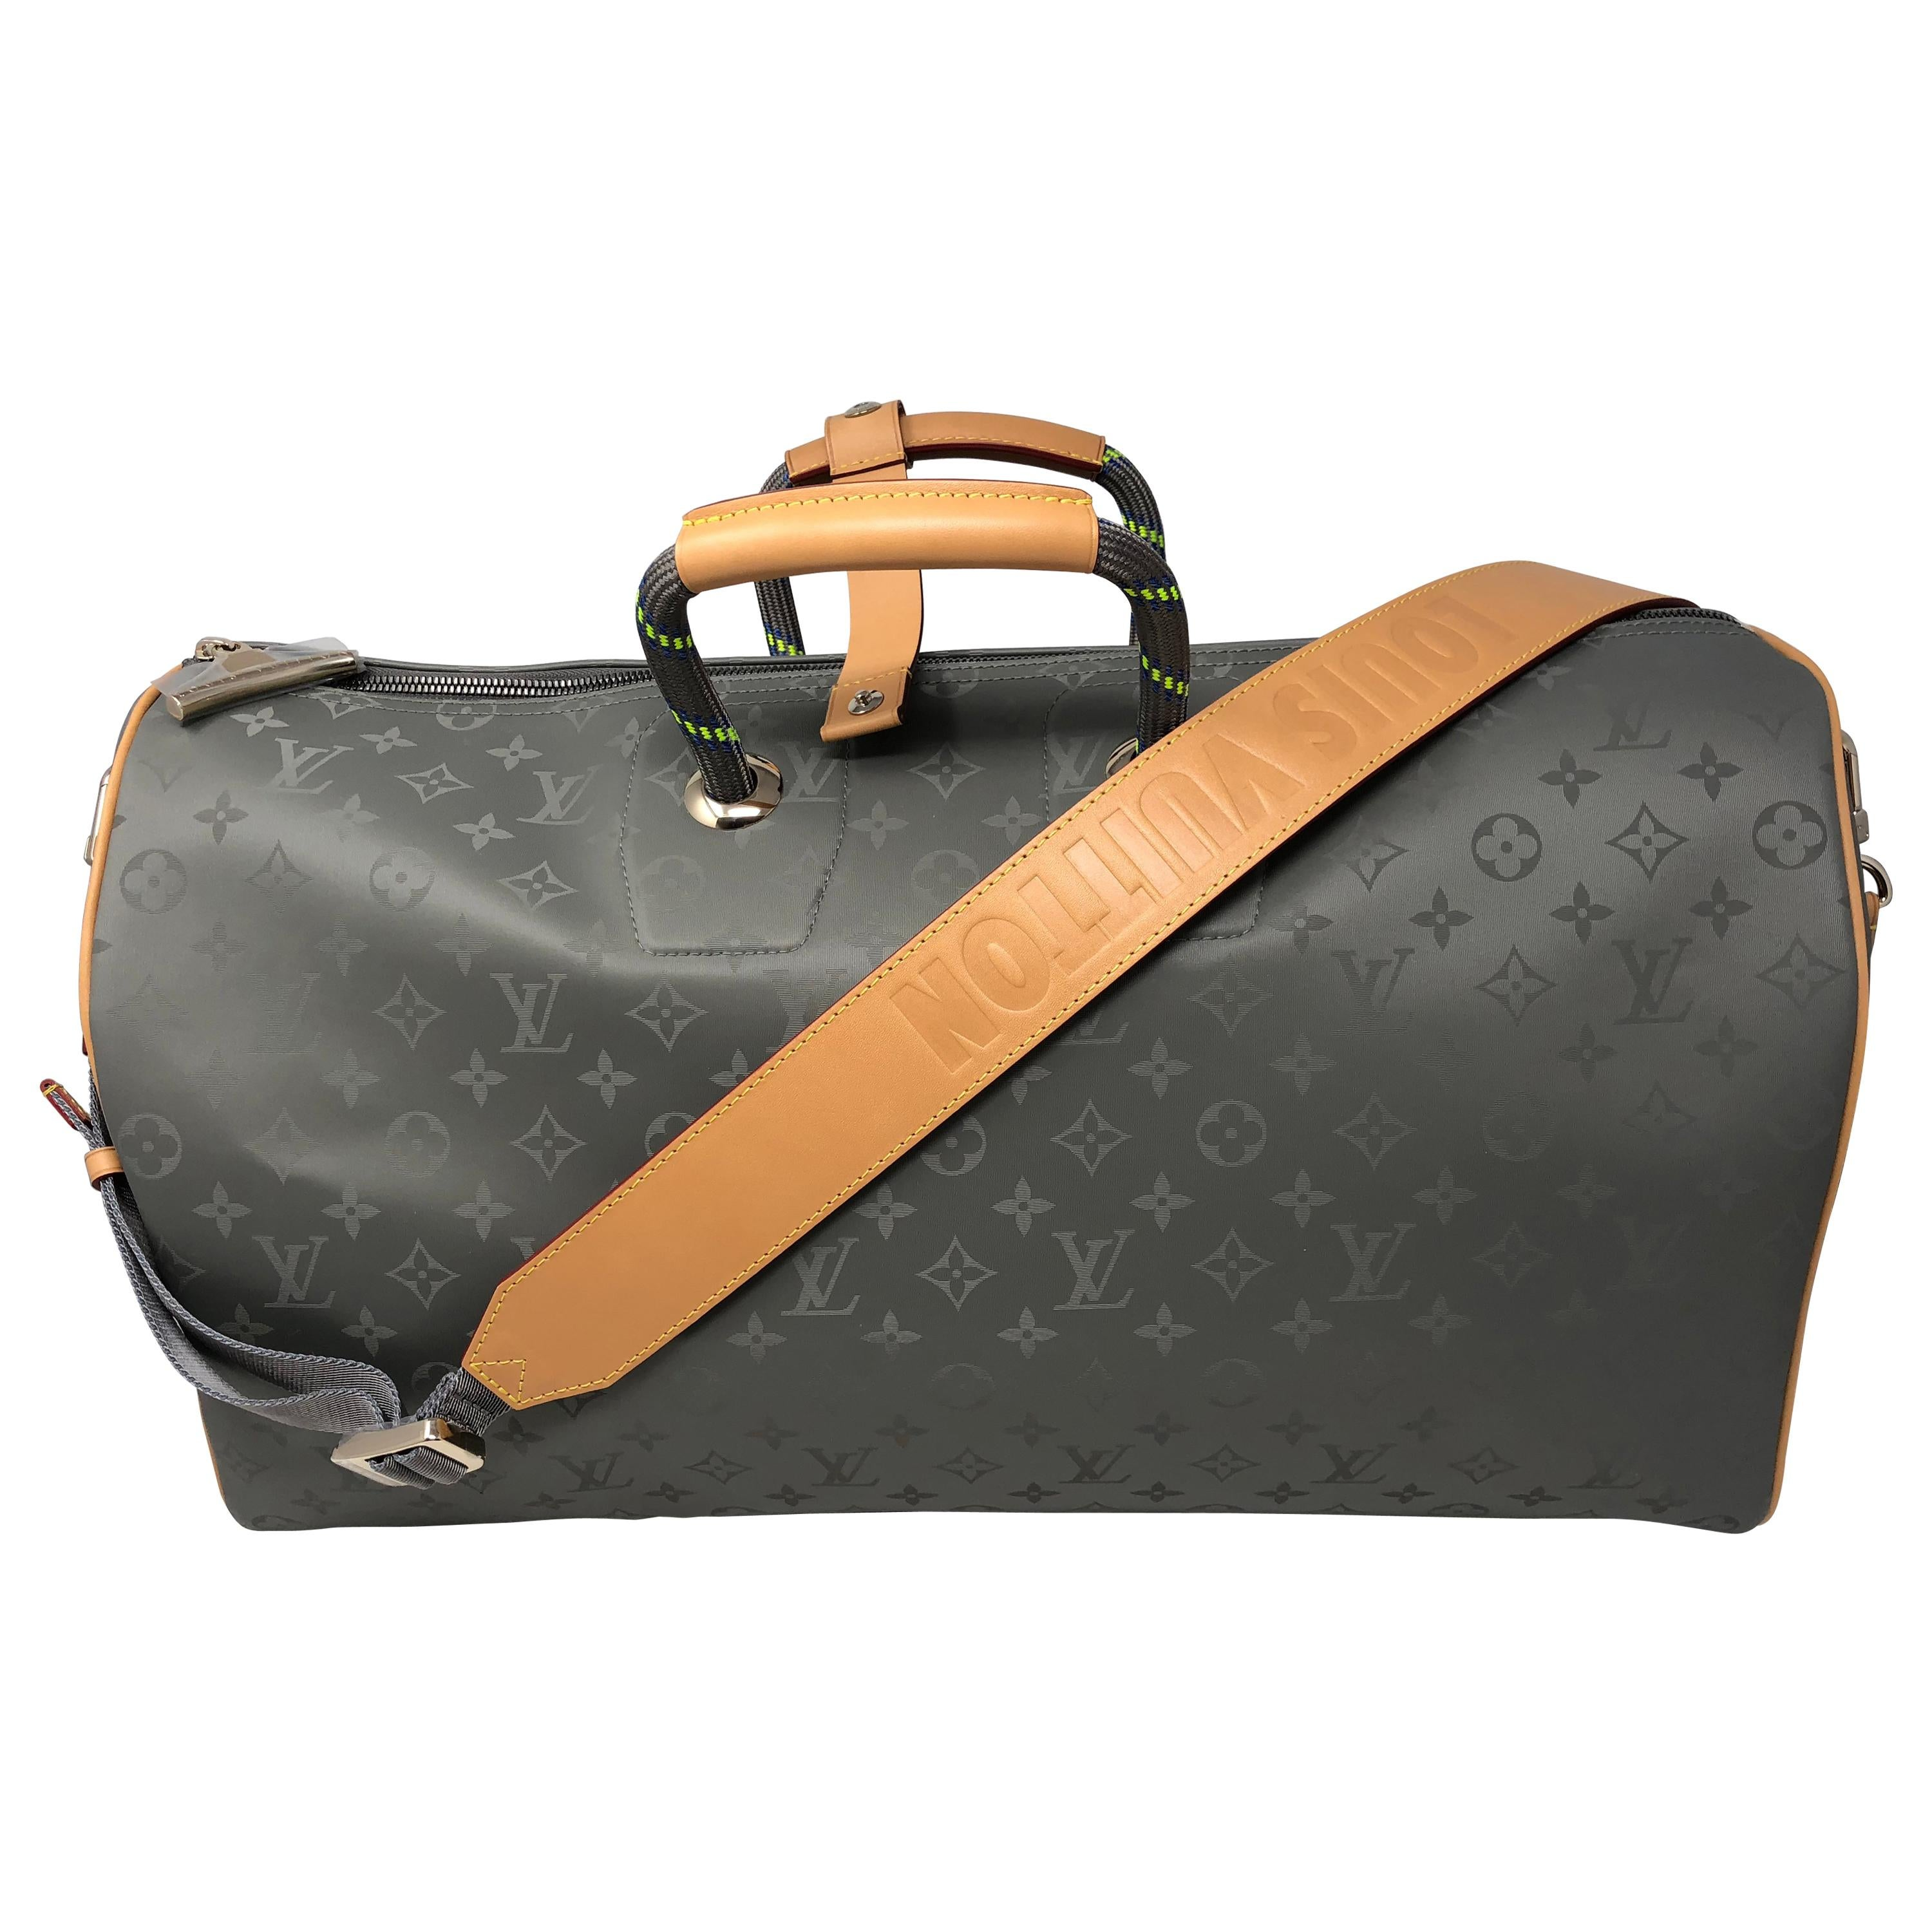 6134ed530f16 Louis Vuitton Titanium 50 Grey Keepall Bandouliere at 1stdibs